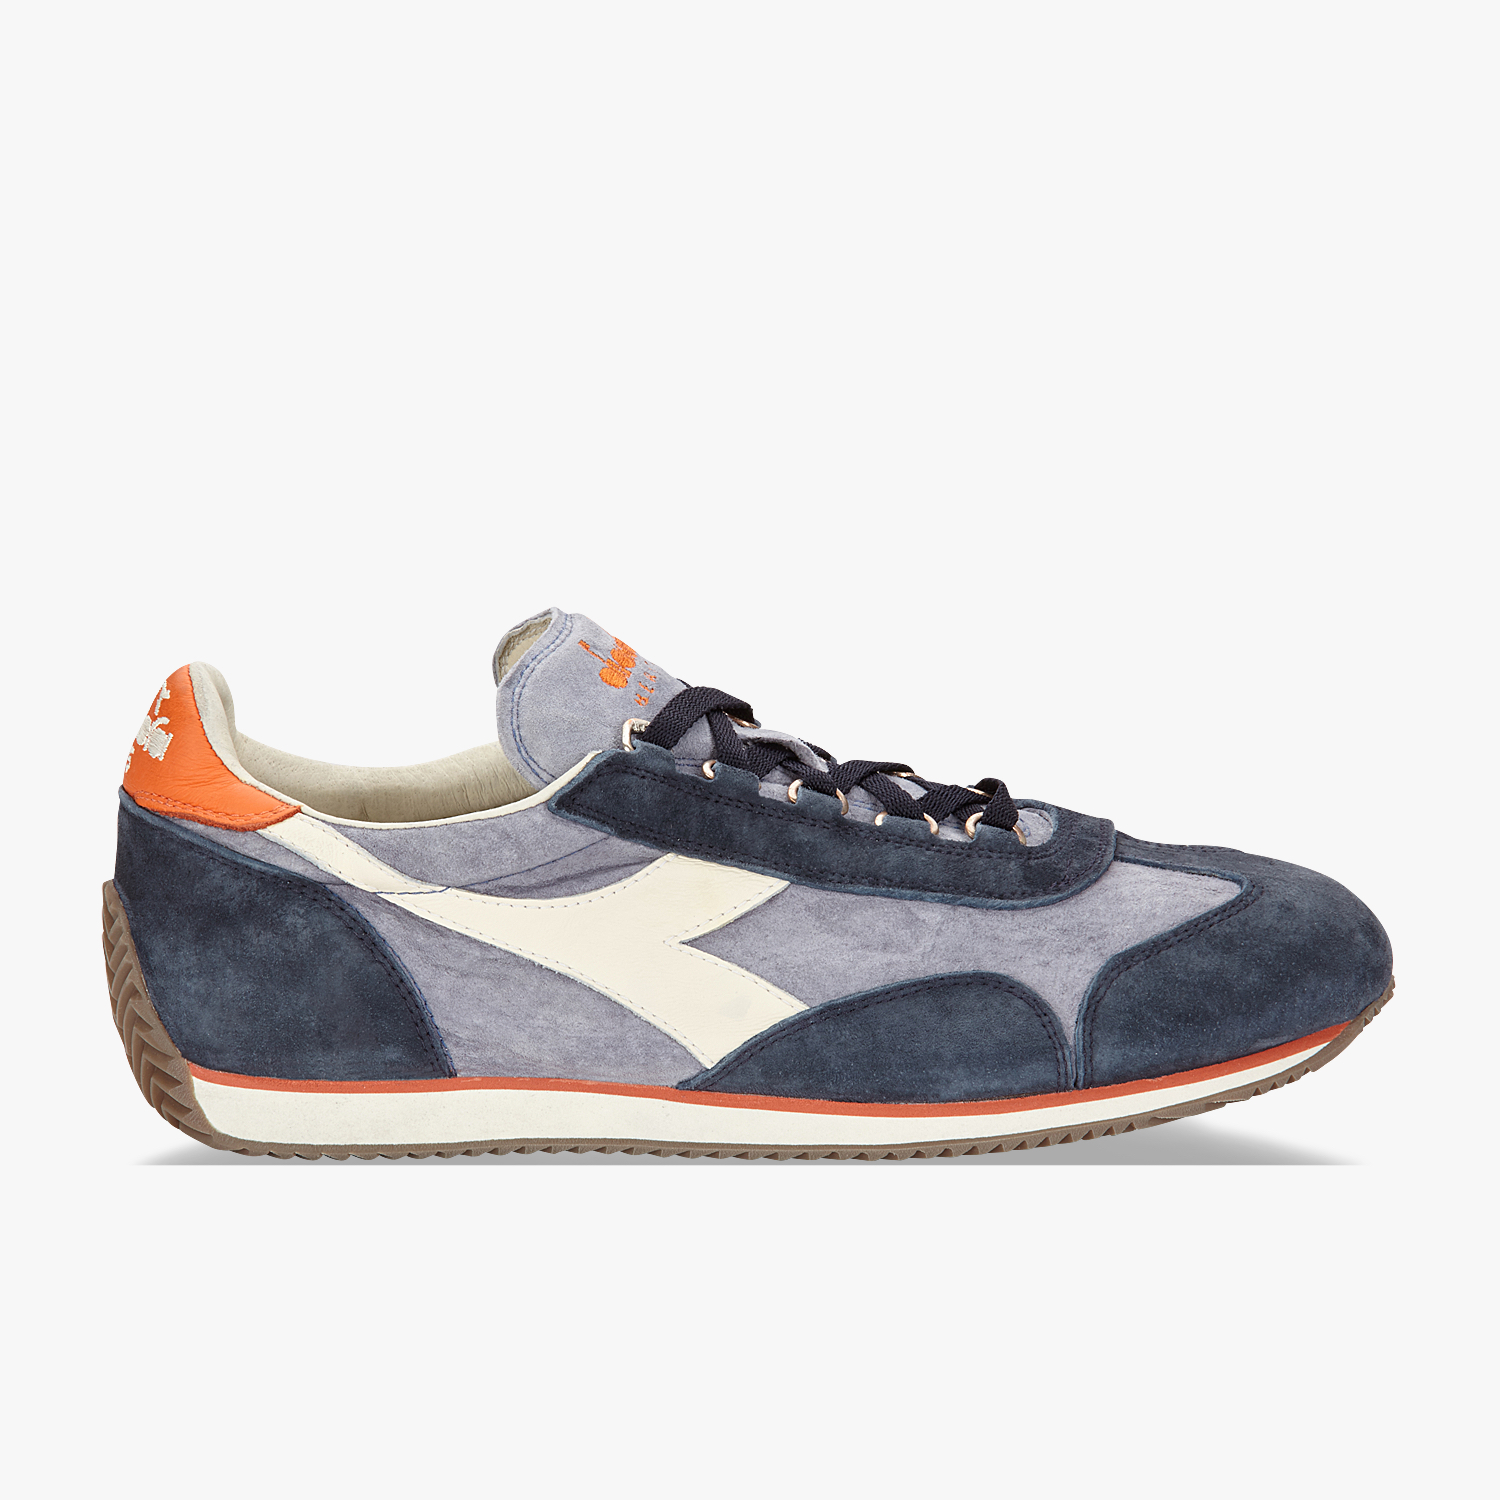 EQUIPE SW 12 - FOOTWEAR - Low-tops & sneakers Diadora Enjoy Cheap Online Professional Discount Hot Sale dUPtKbX